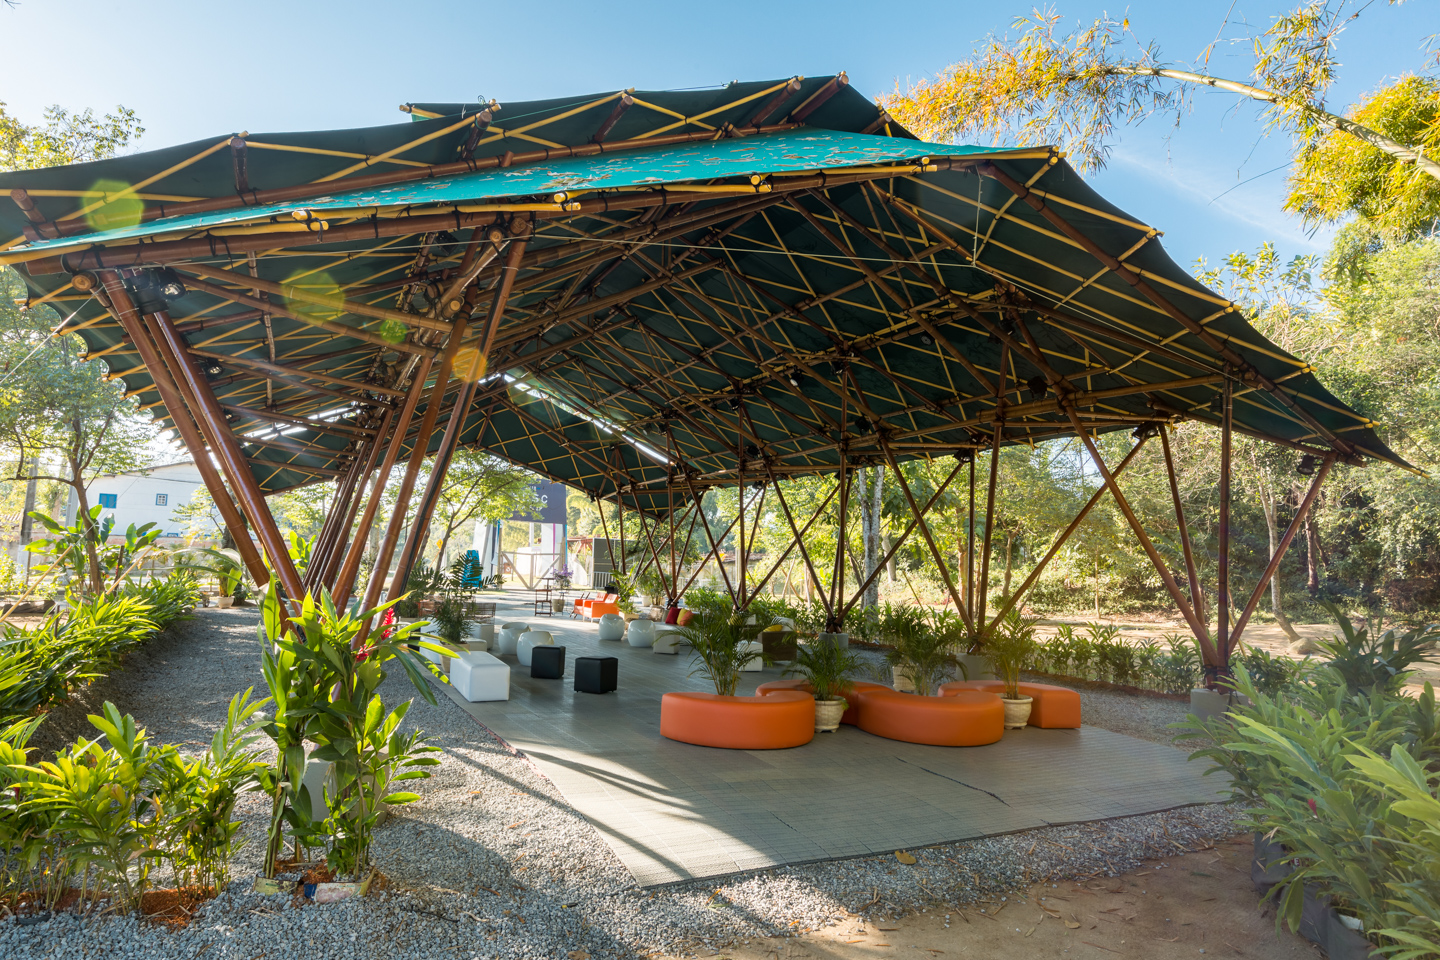 Deployable-bamboo-space-structure-pavilion-Bambutec-8.jpg